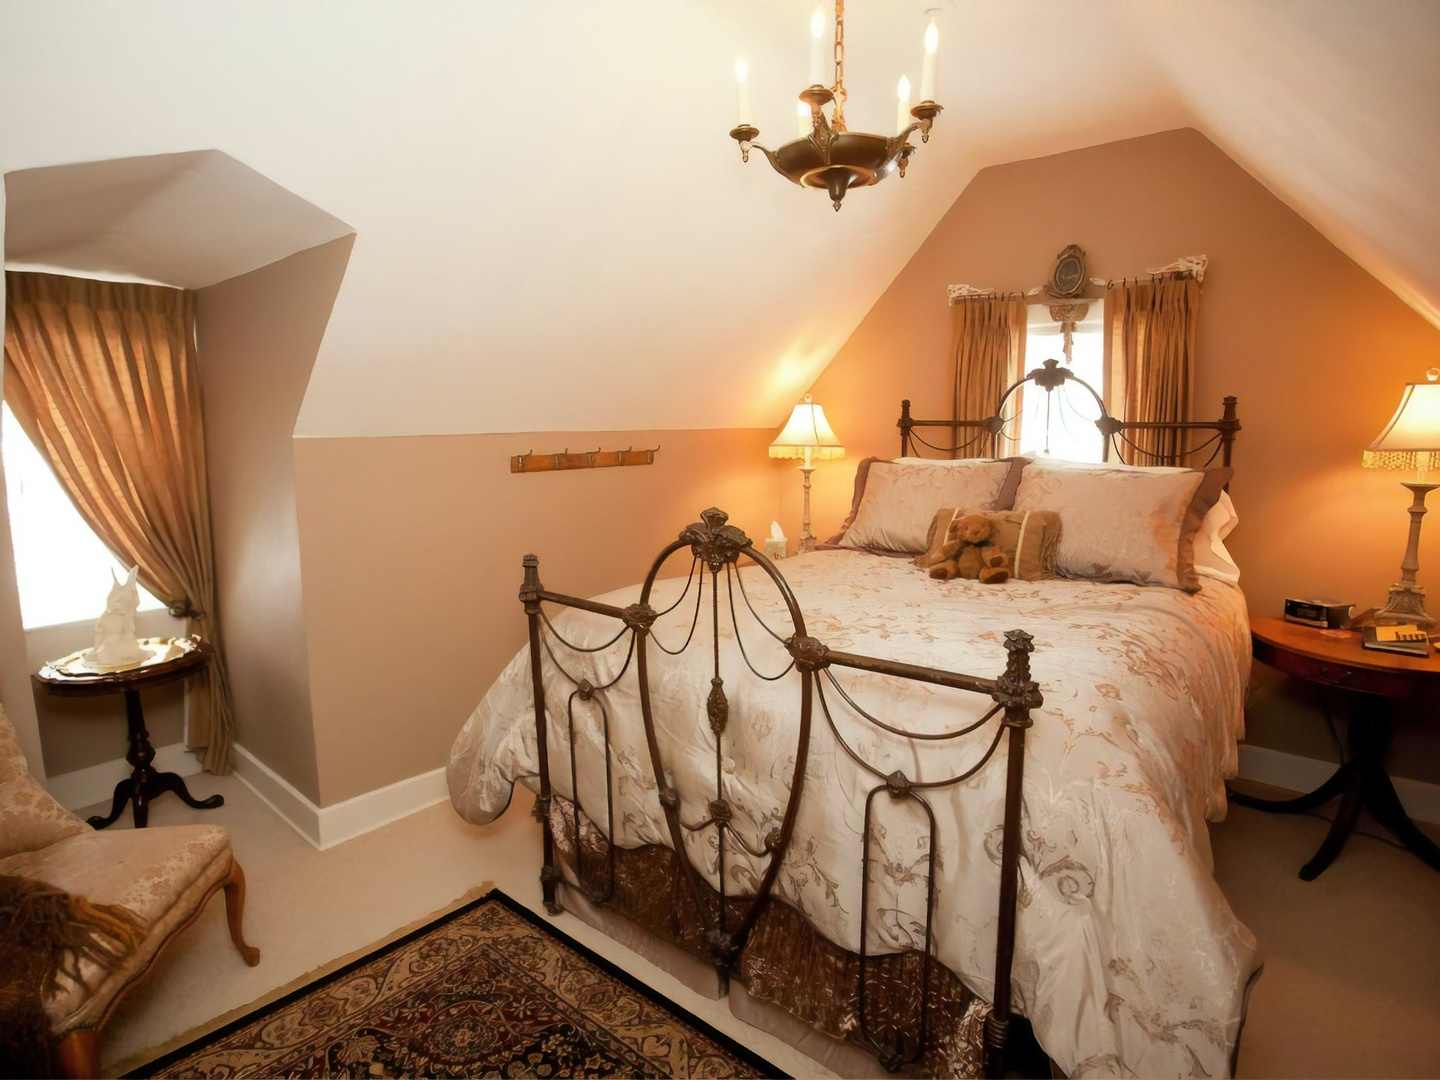 A bedroom with a bed and a mirror in a room at Westphal Mansion Inn Bed and Breakfast.